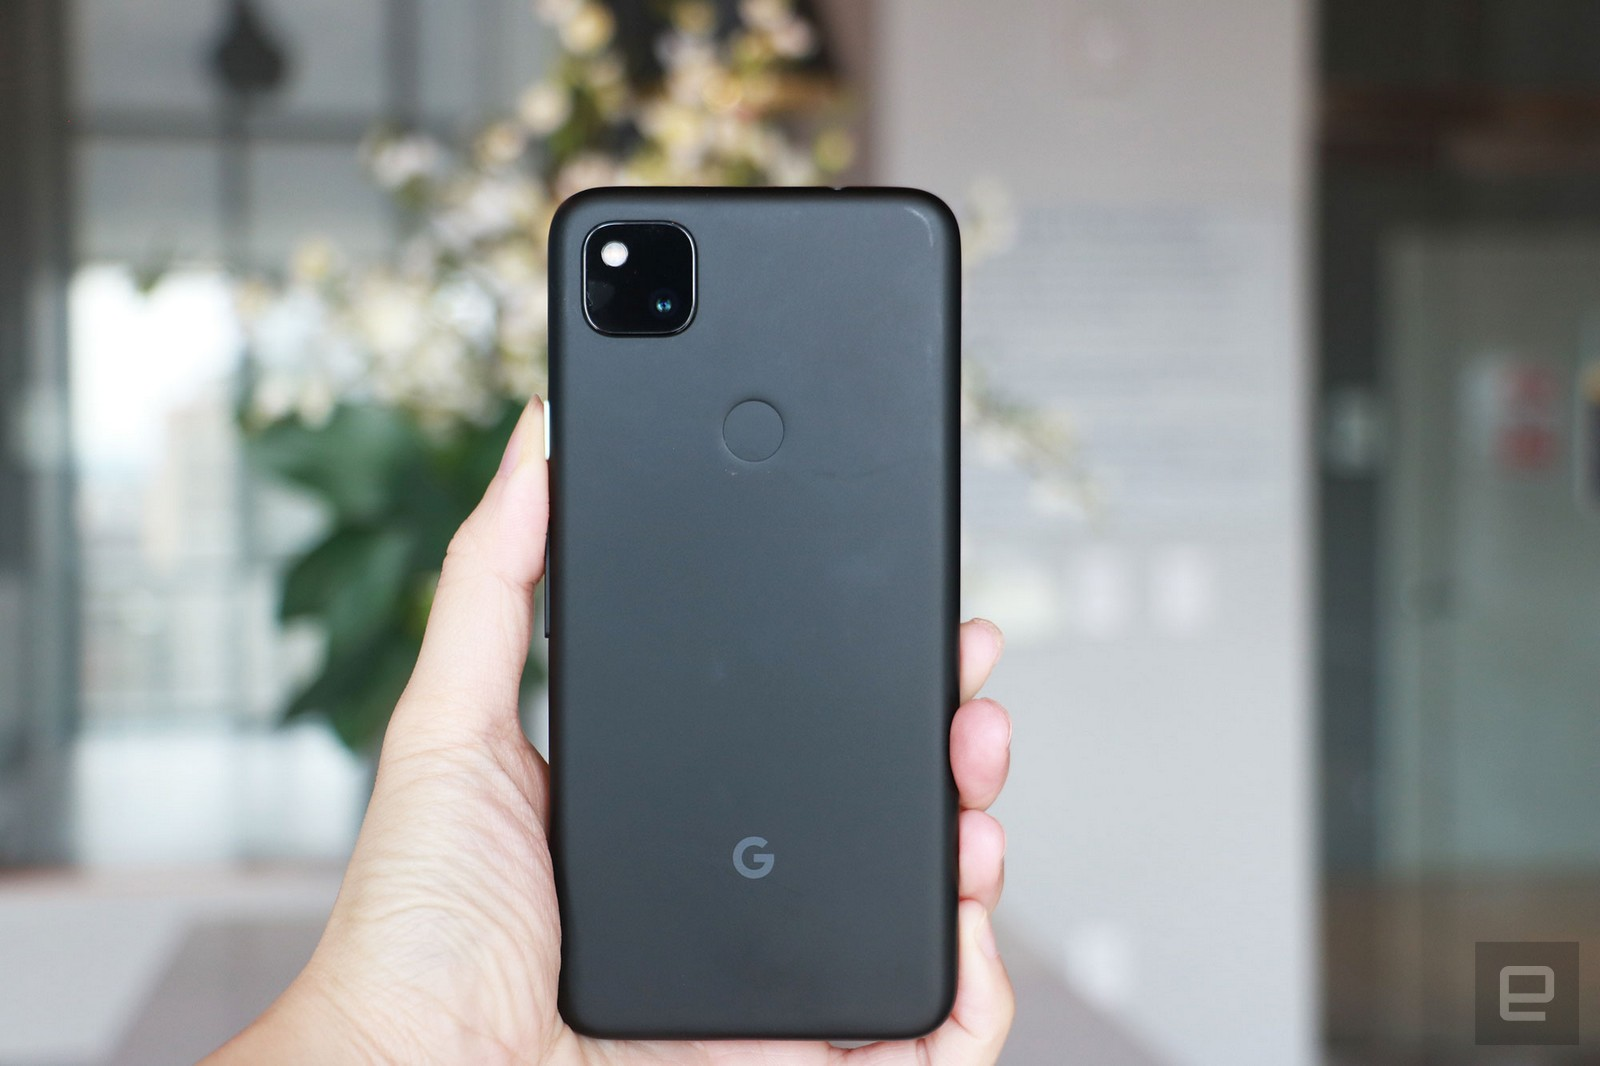 Google launches Pixel 4a at $349, confirms new phones for fall